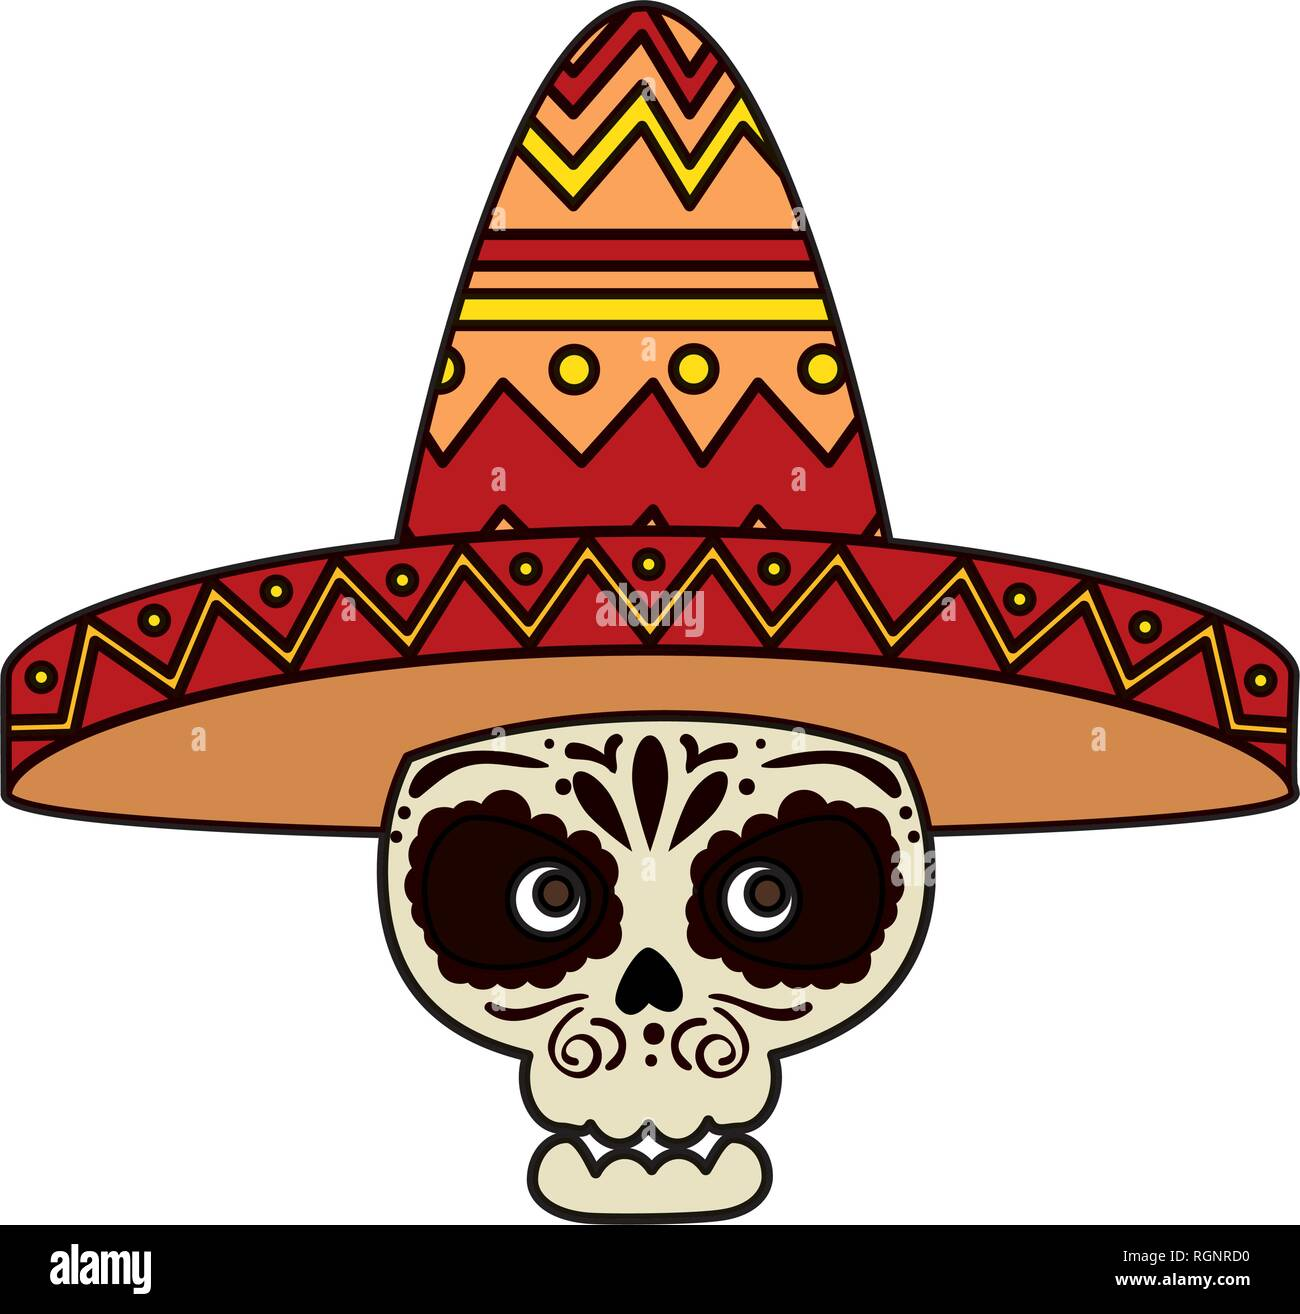 341fe78d4b44 death day mask with mariachi hat Stock Vector Art   Illustration ...